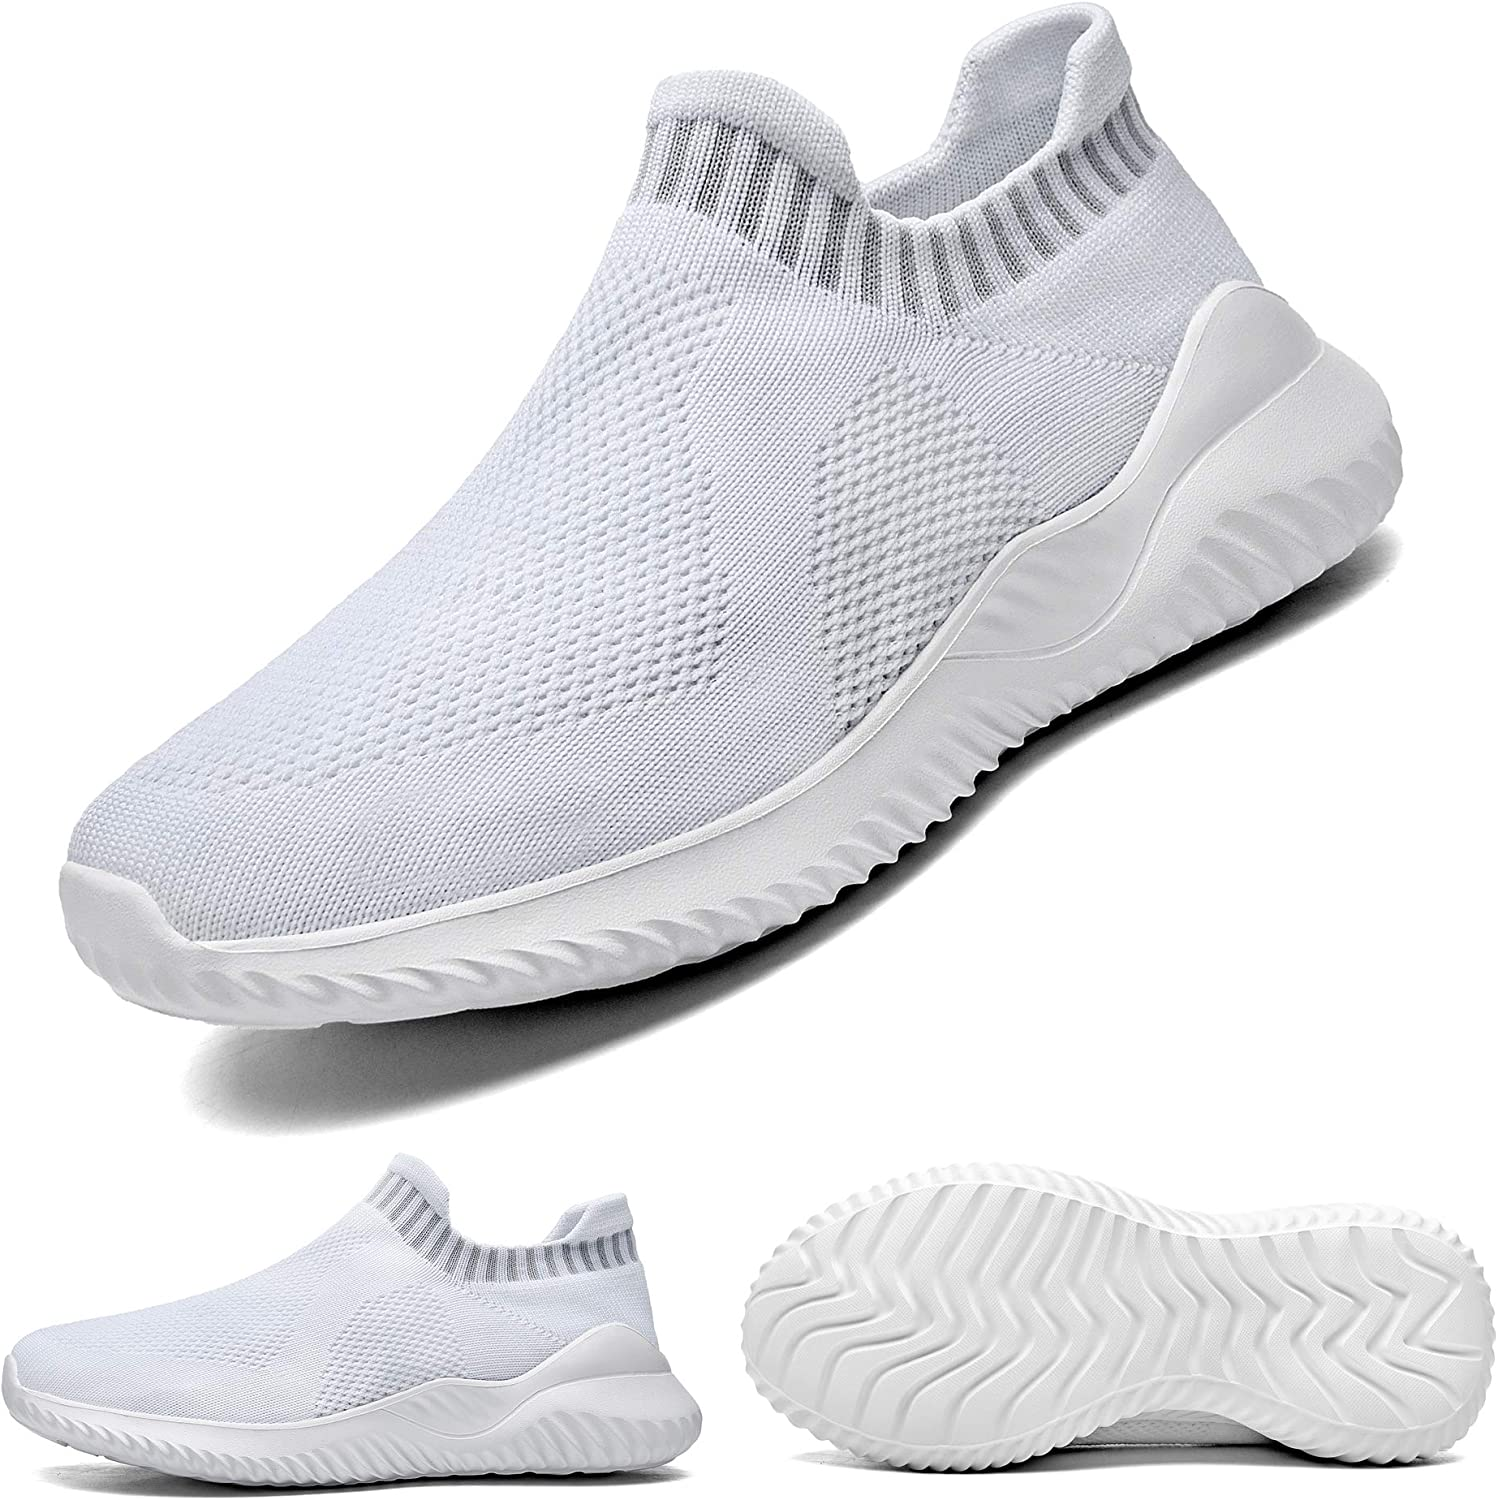 Women/'s Walking Sneakers Breathable Knit Sports Running Tennis Casual Gym Shoes